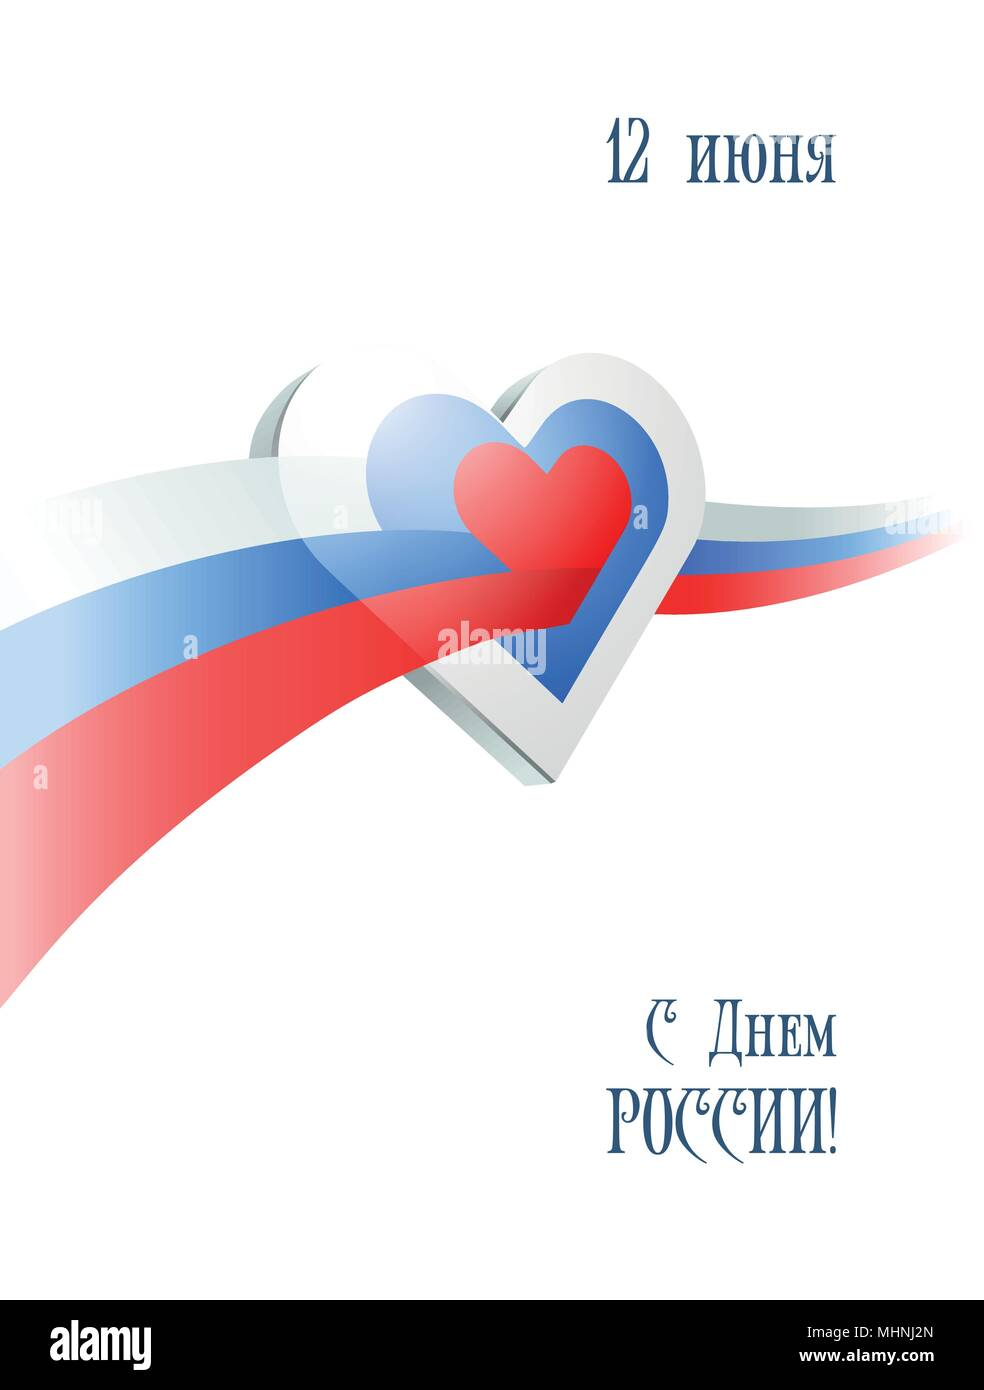 June 12. Happy Russia Day. Greeting card with waving russian flag crosses heart on white background. Vector illustration. Stock Vector